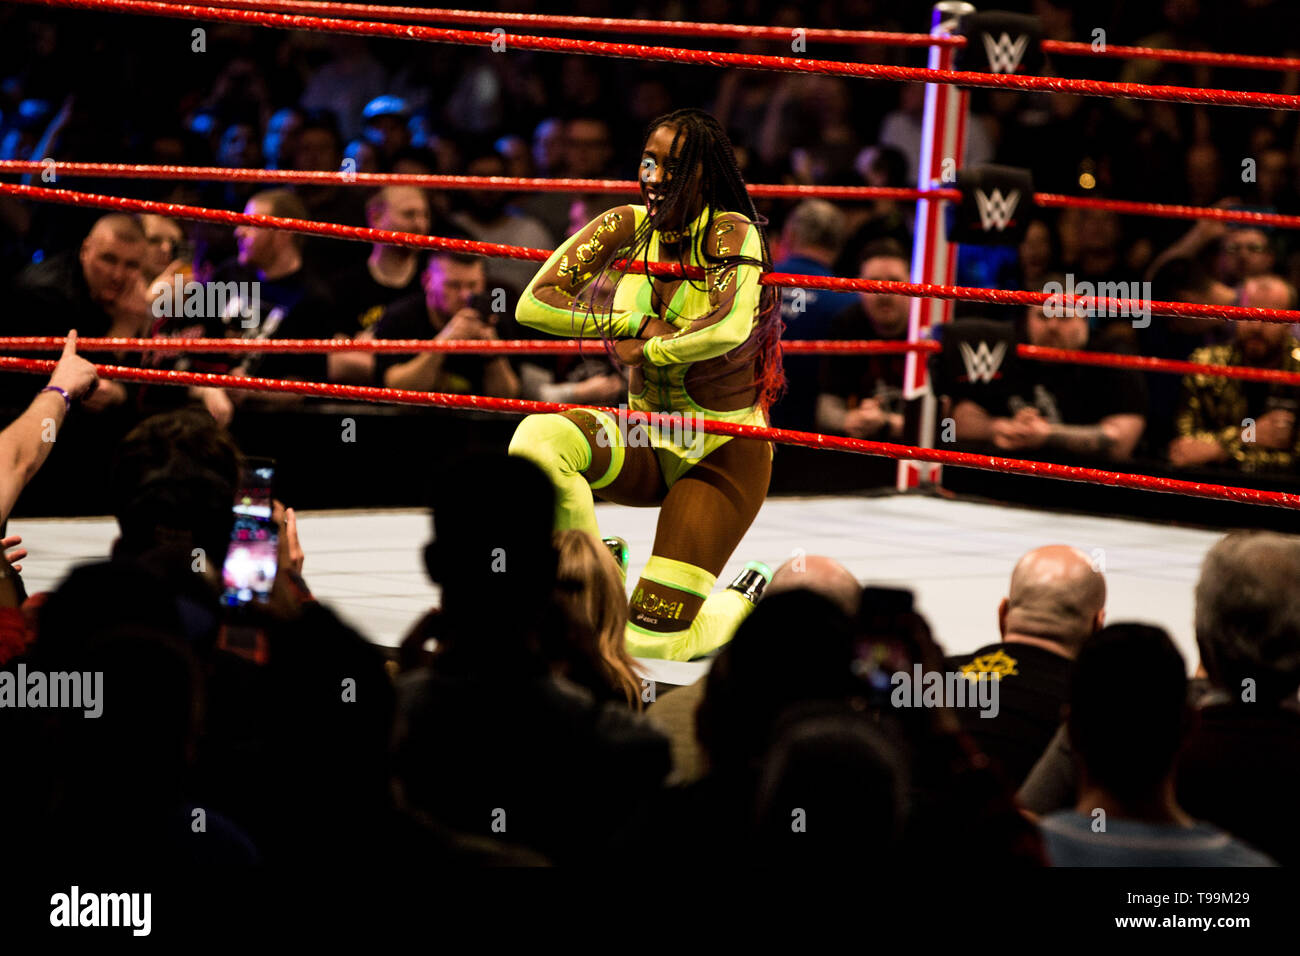 WWE Monday Night Raw en el 02 Arena. Londres. El 13 de mayo de 2019 Foto de stock